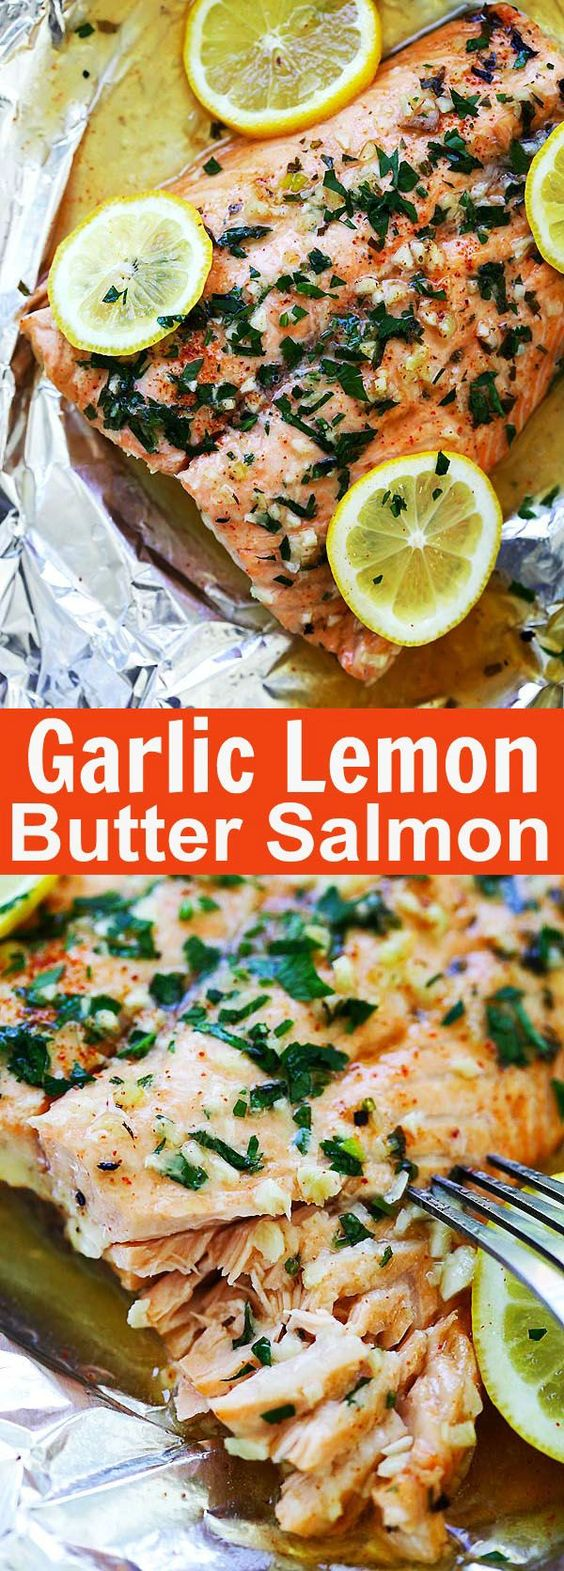 Garlic Lemon Butter Salmon - the easiest foil-wrapped salmon recipe ever with crazy delicious salmon in garlic lemon butter sauce. So good!